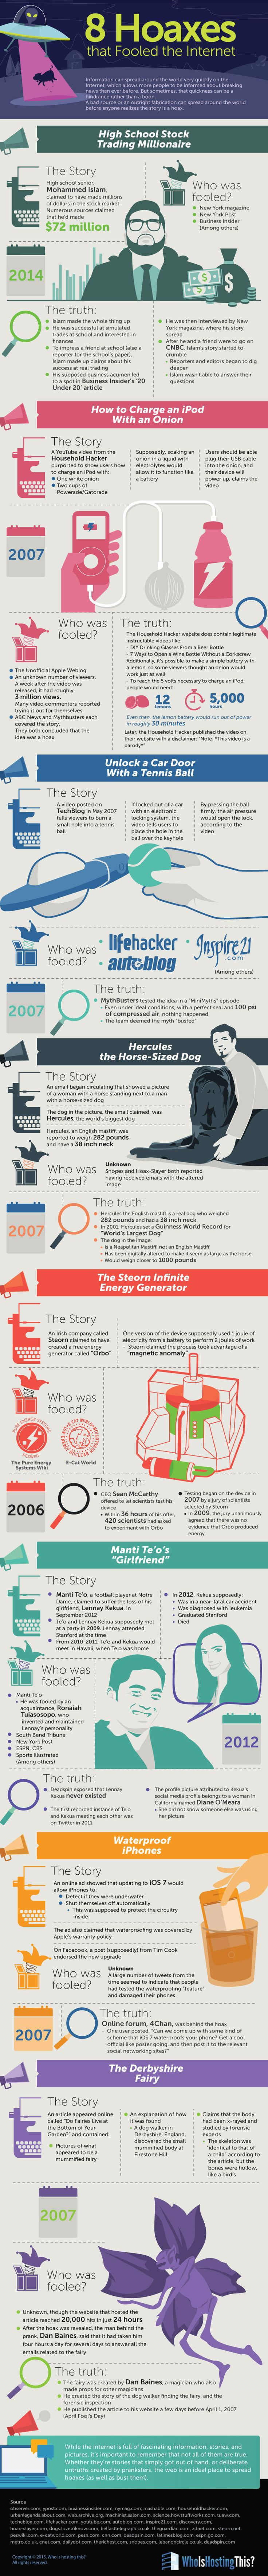 Internet hoaxes #INFOGRAPHIC